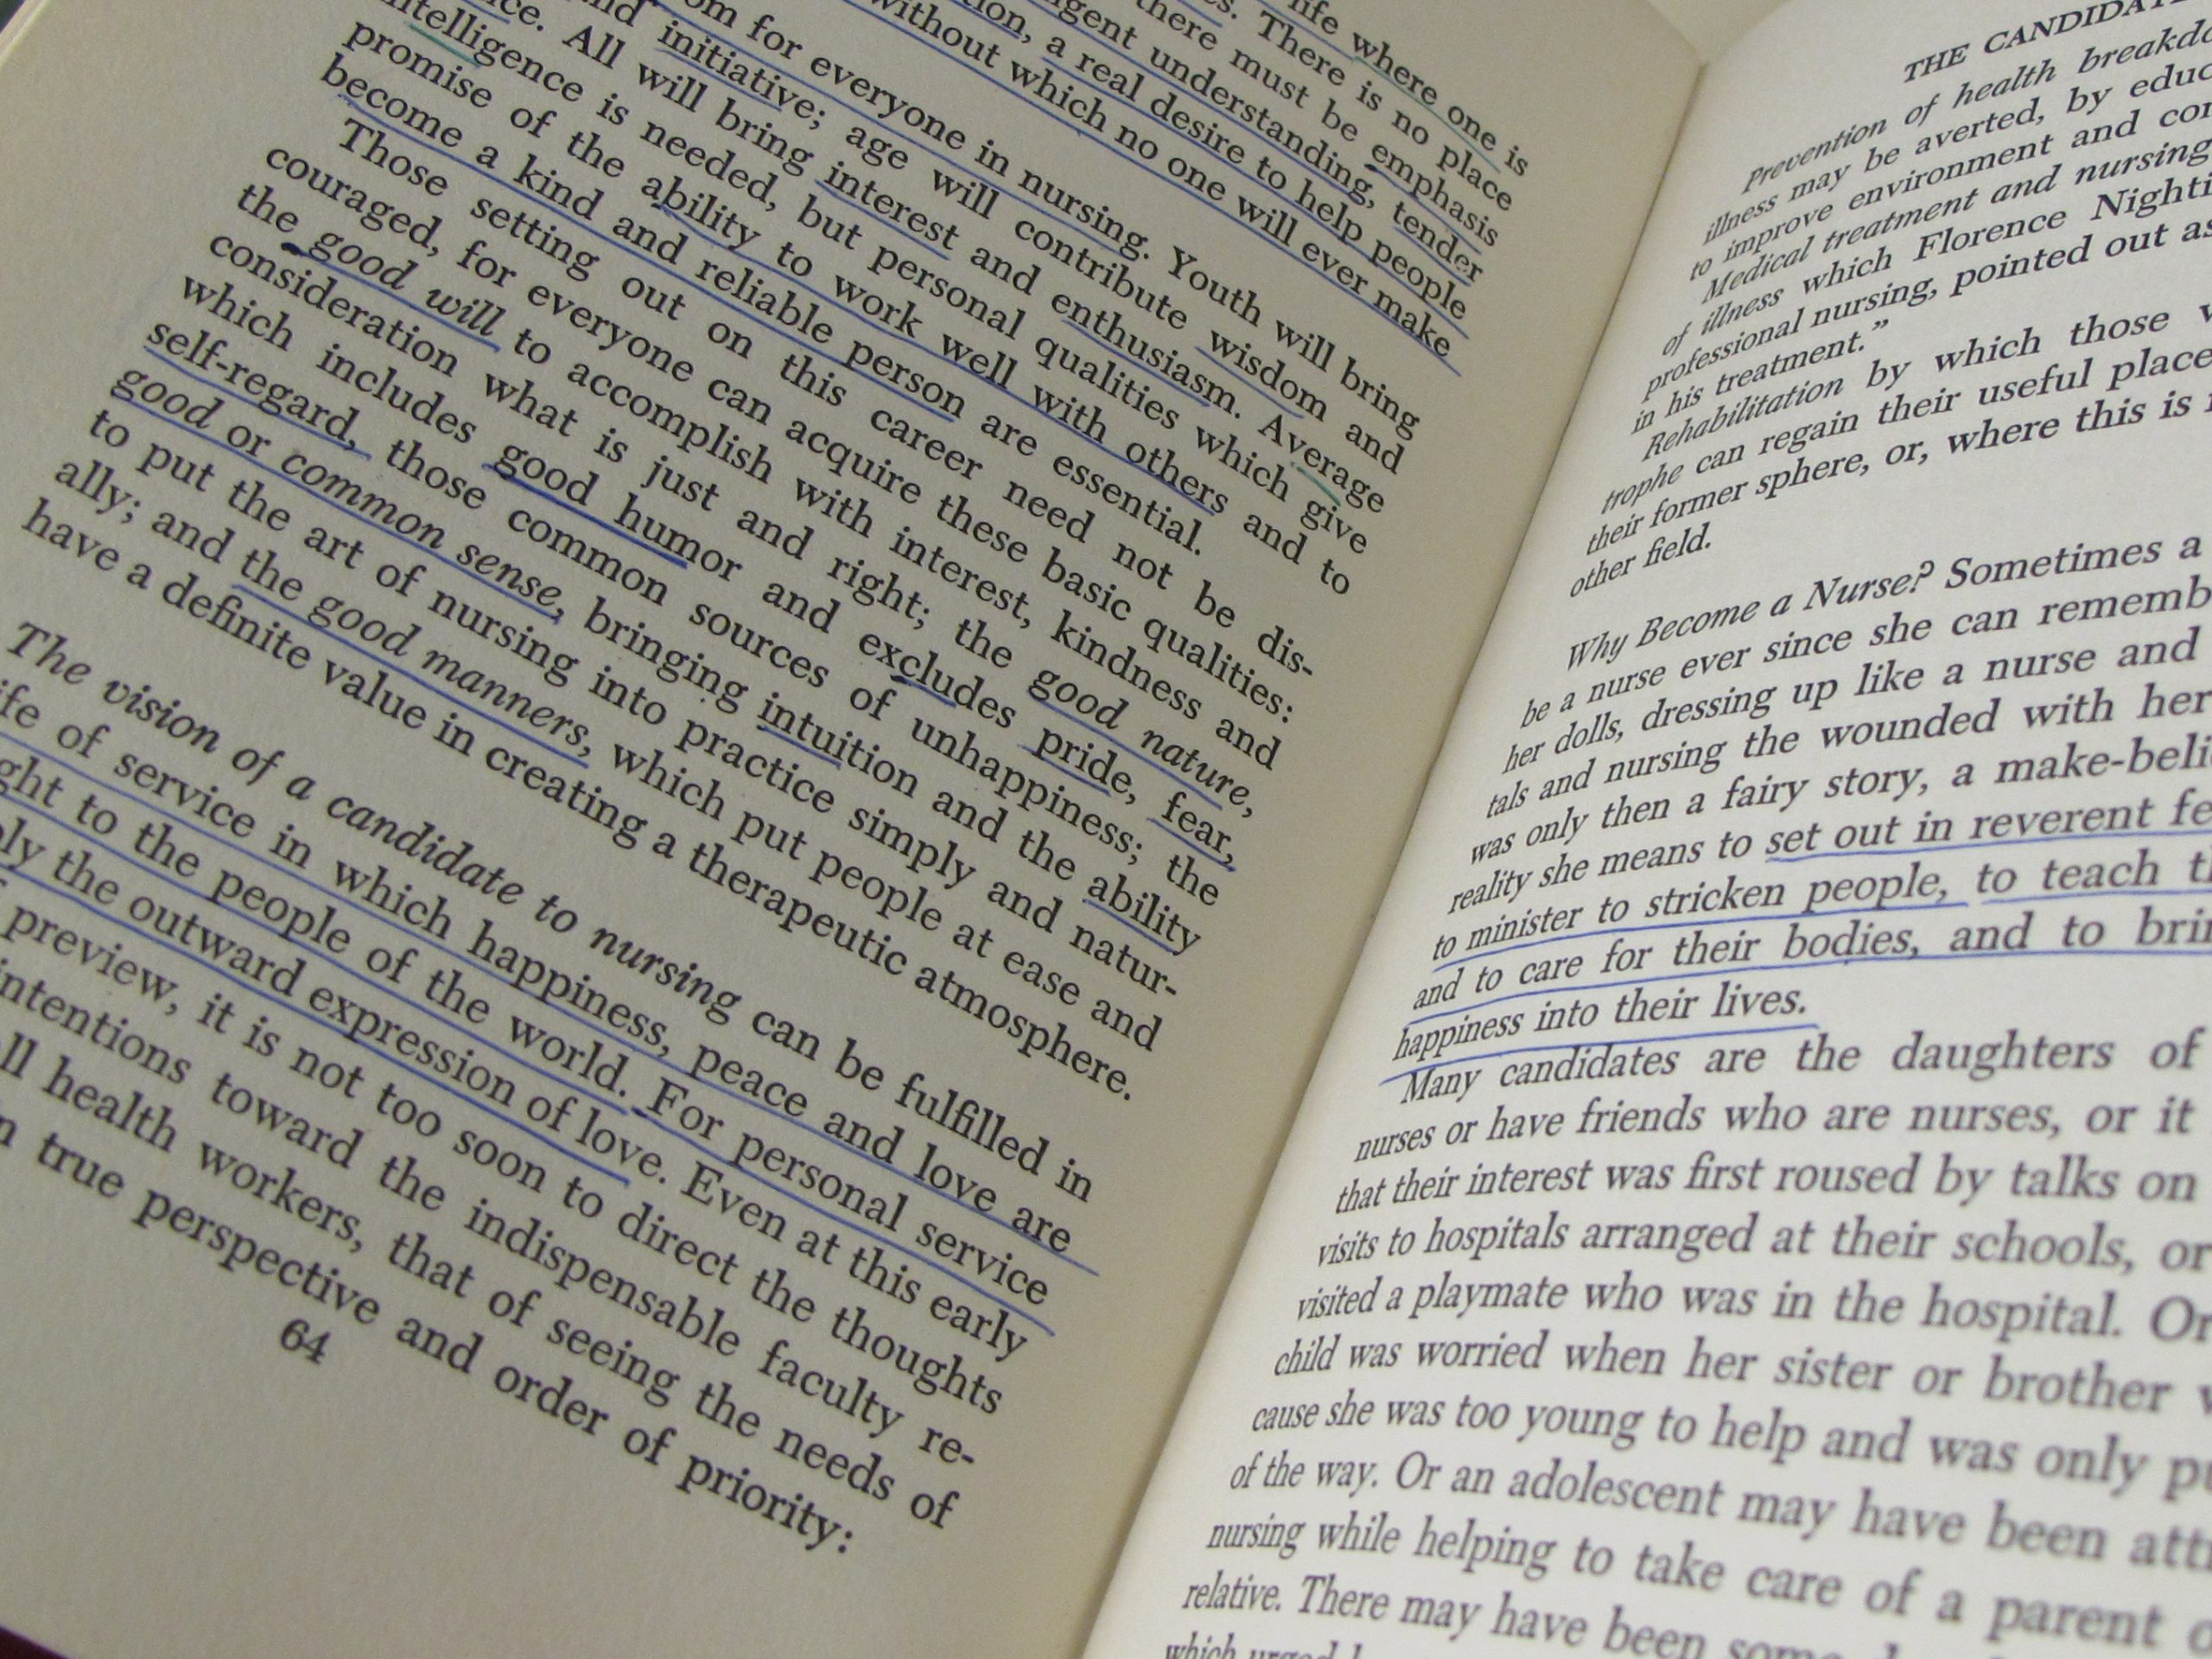 Annotations in EUL MS 472/NEHC/1/63 - 'Nurse and Patient: Human Relations in Nursing' by Evelyn Pearce (1969)